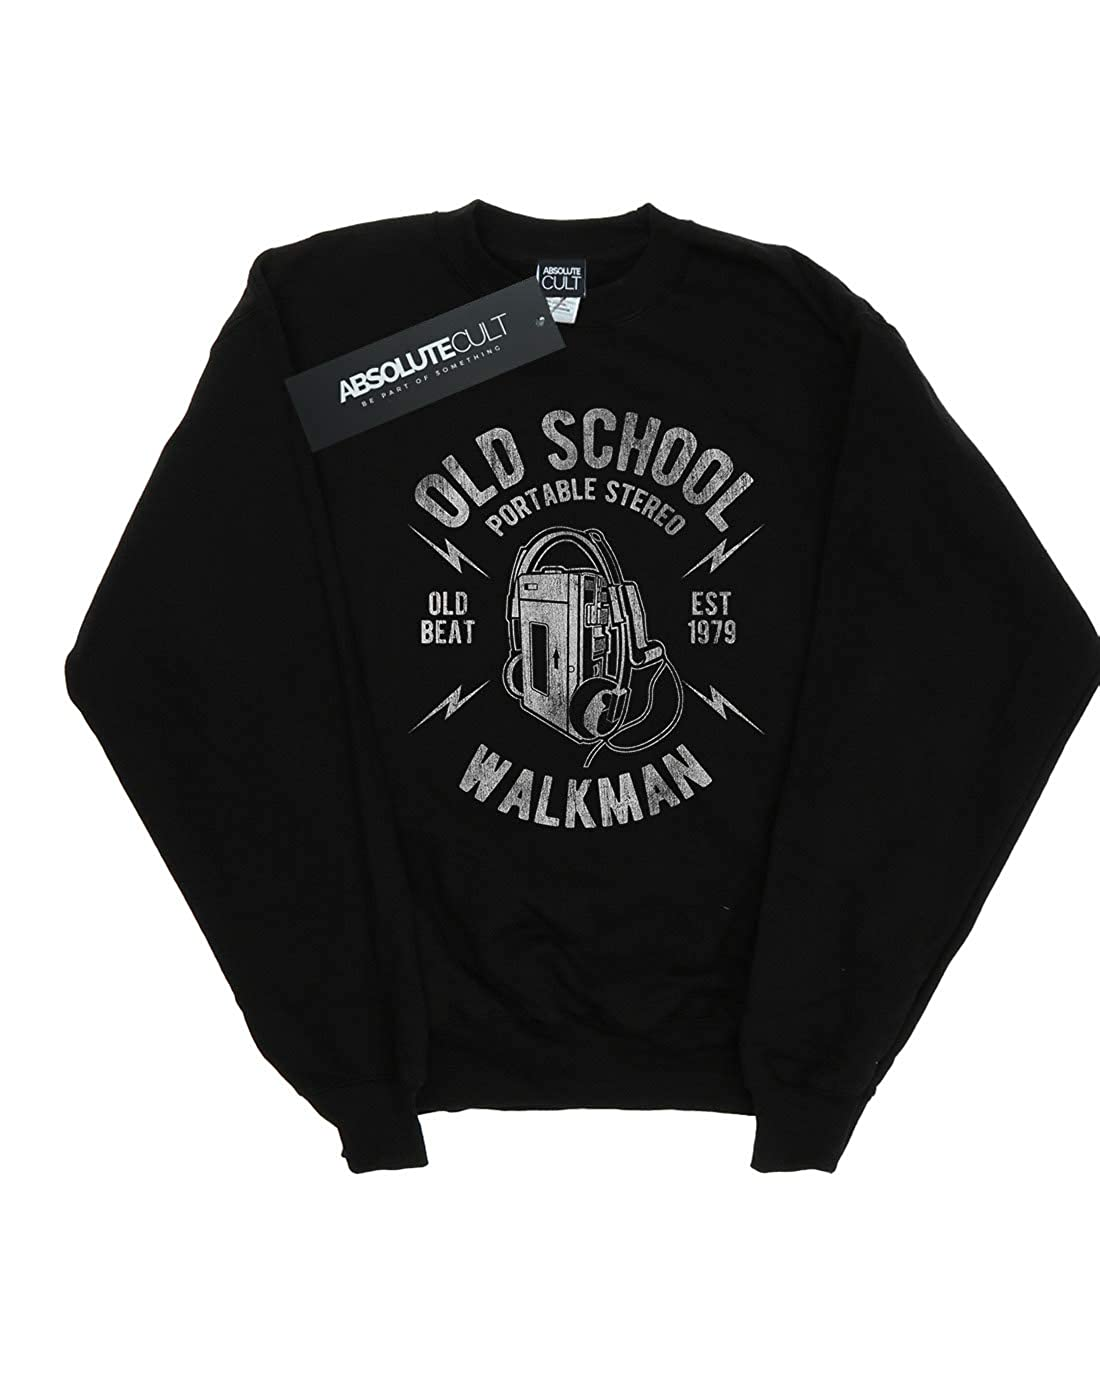 Absolute Cult Drewbacca Girls Old School Walkman Sweatshirt